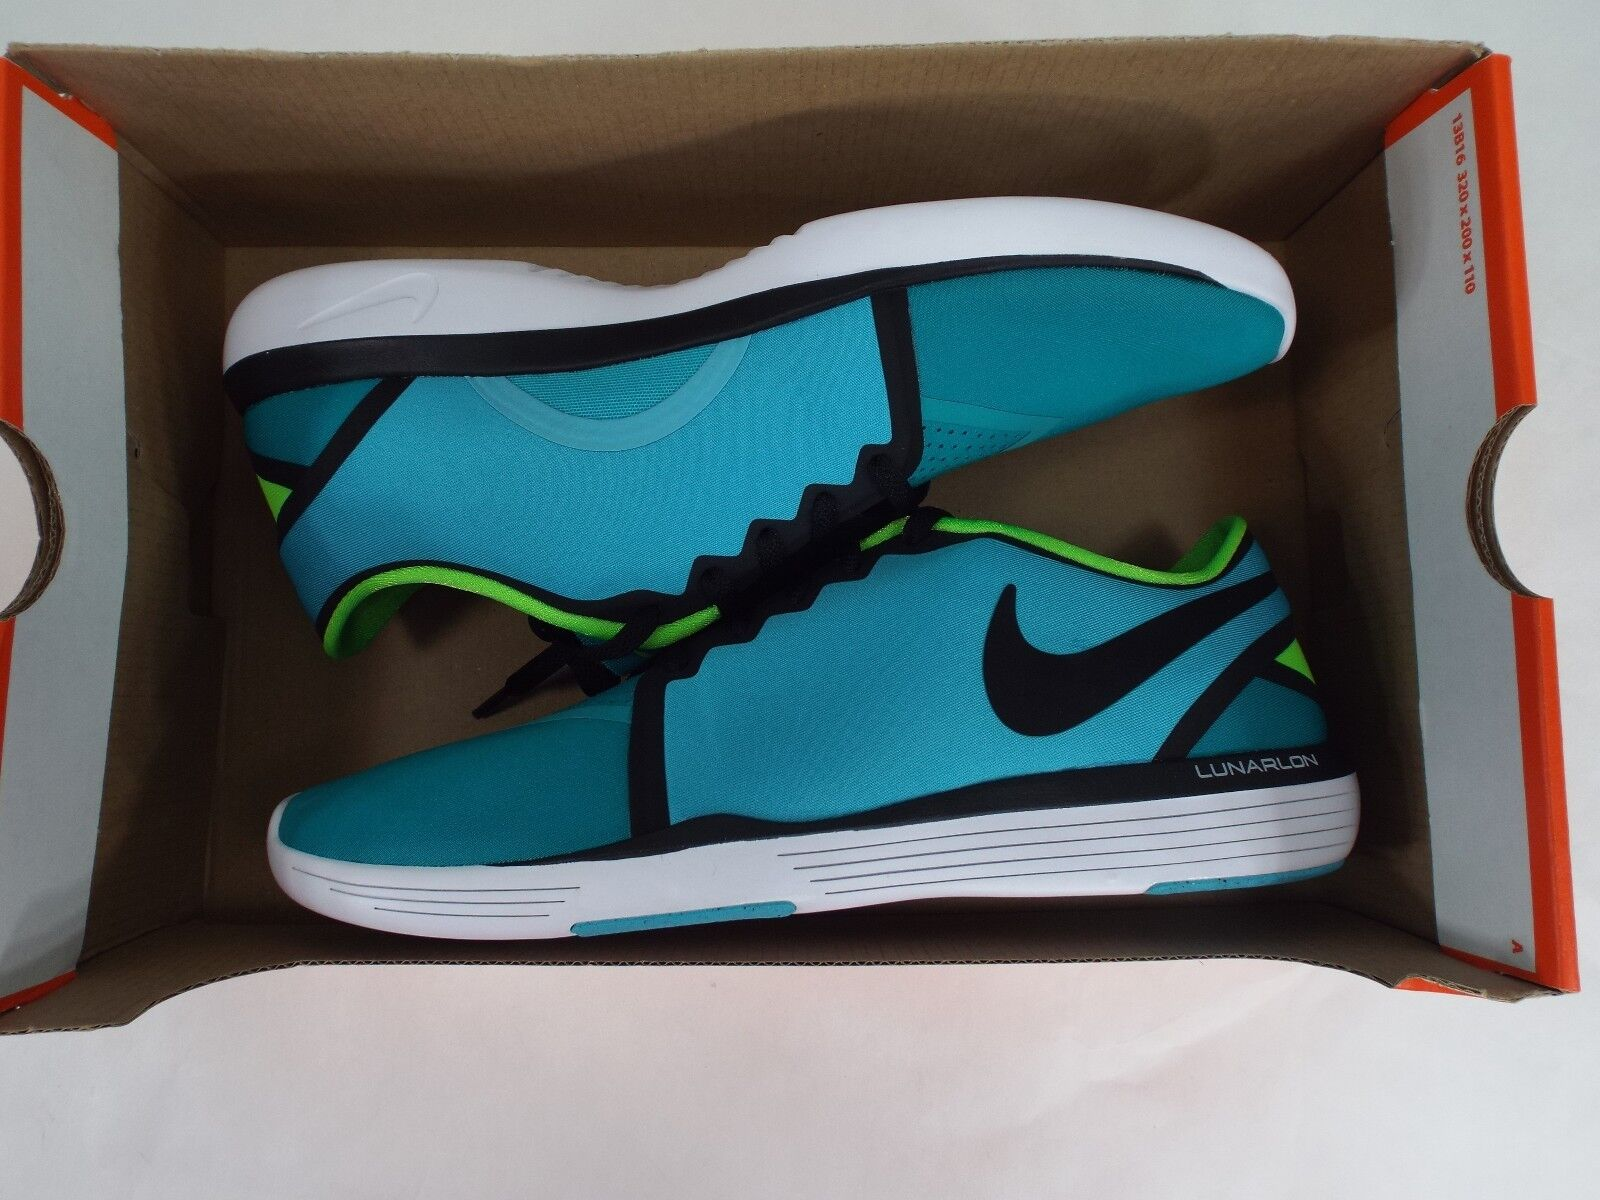 quality design 62da4 62ab6 ... discount new gamma femmes 9 nike lunar sculpt yoga crossfit gamma new  bleu chaussures 100 808602